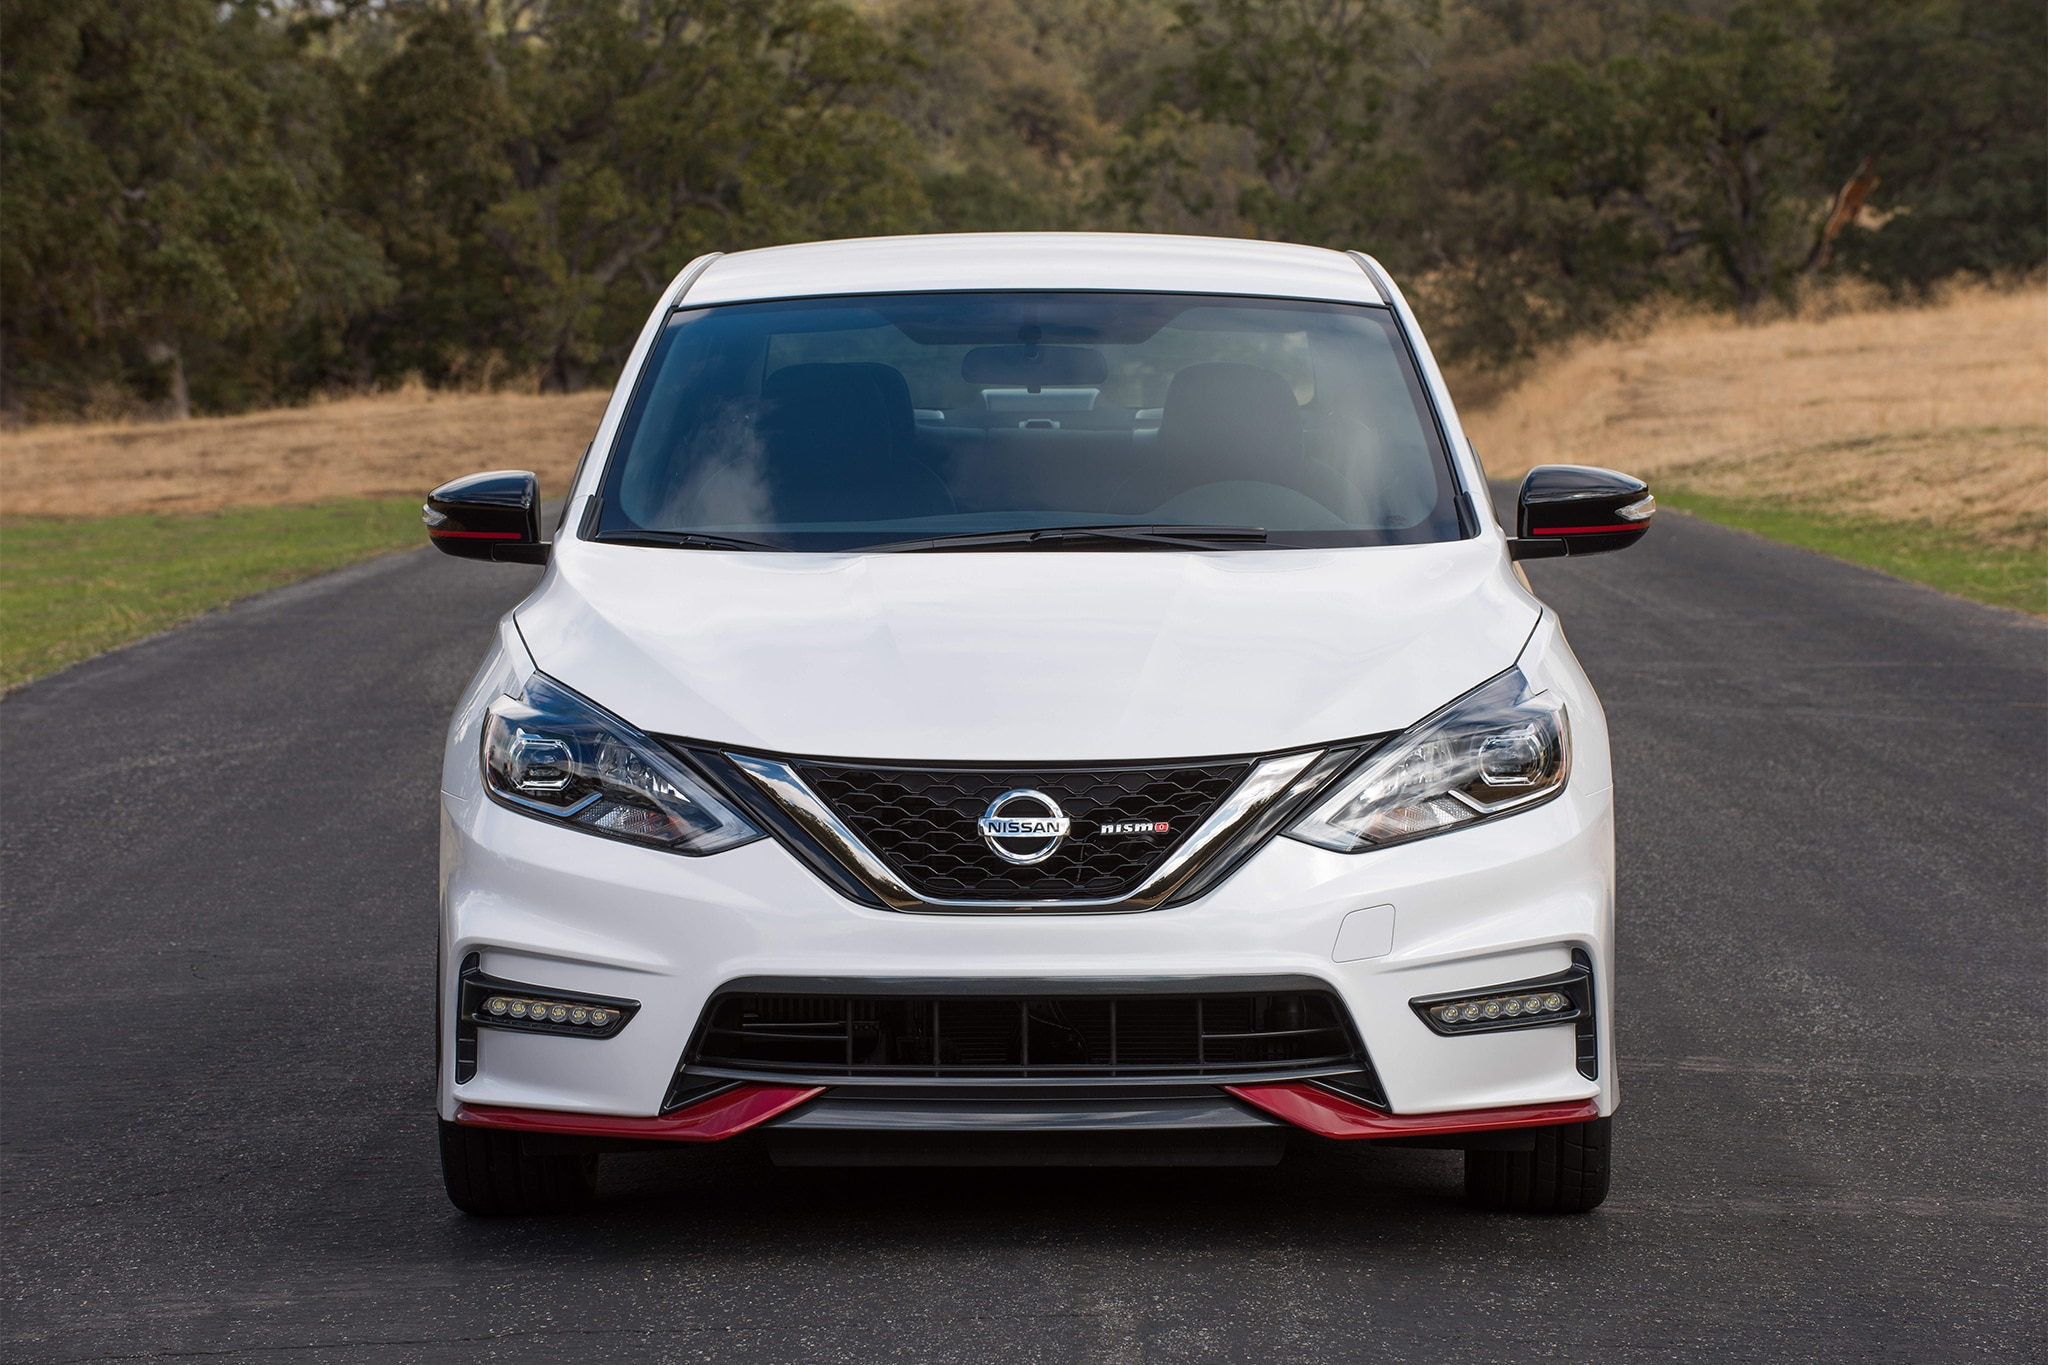 2017 Nissan Sentra NISMO First Look